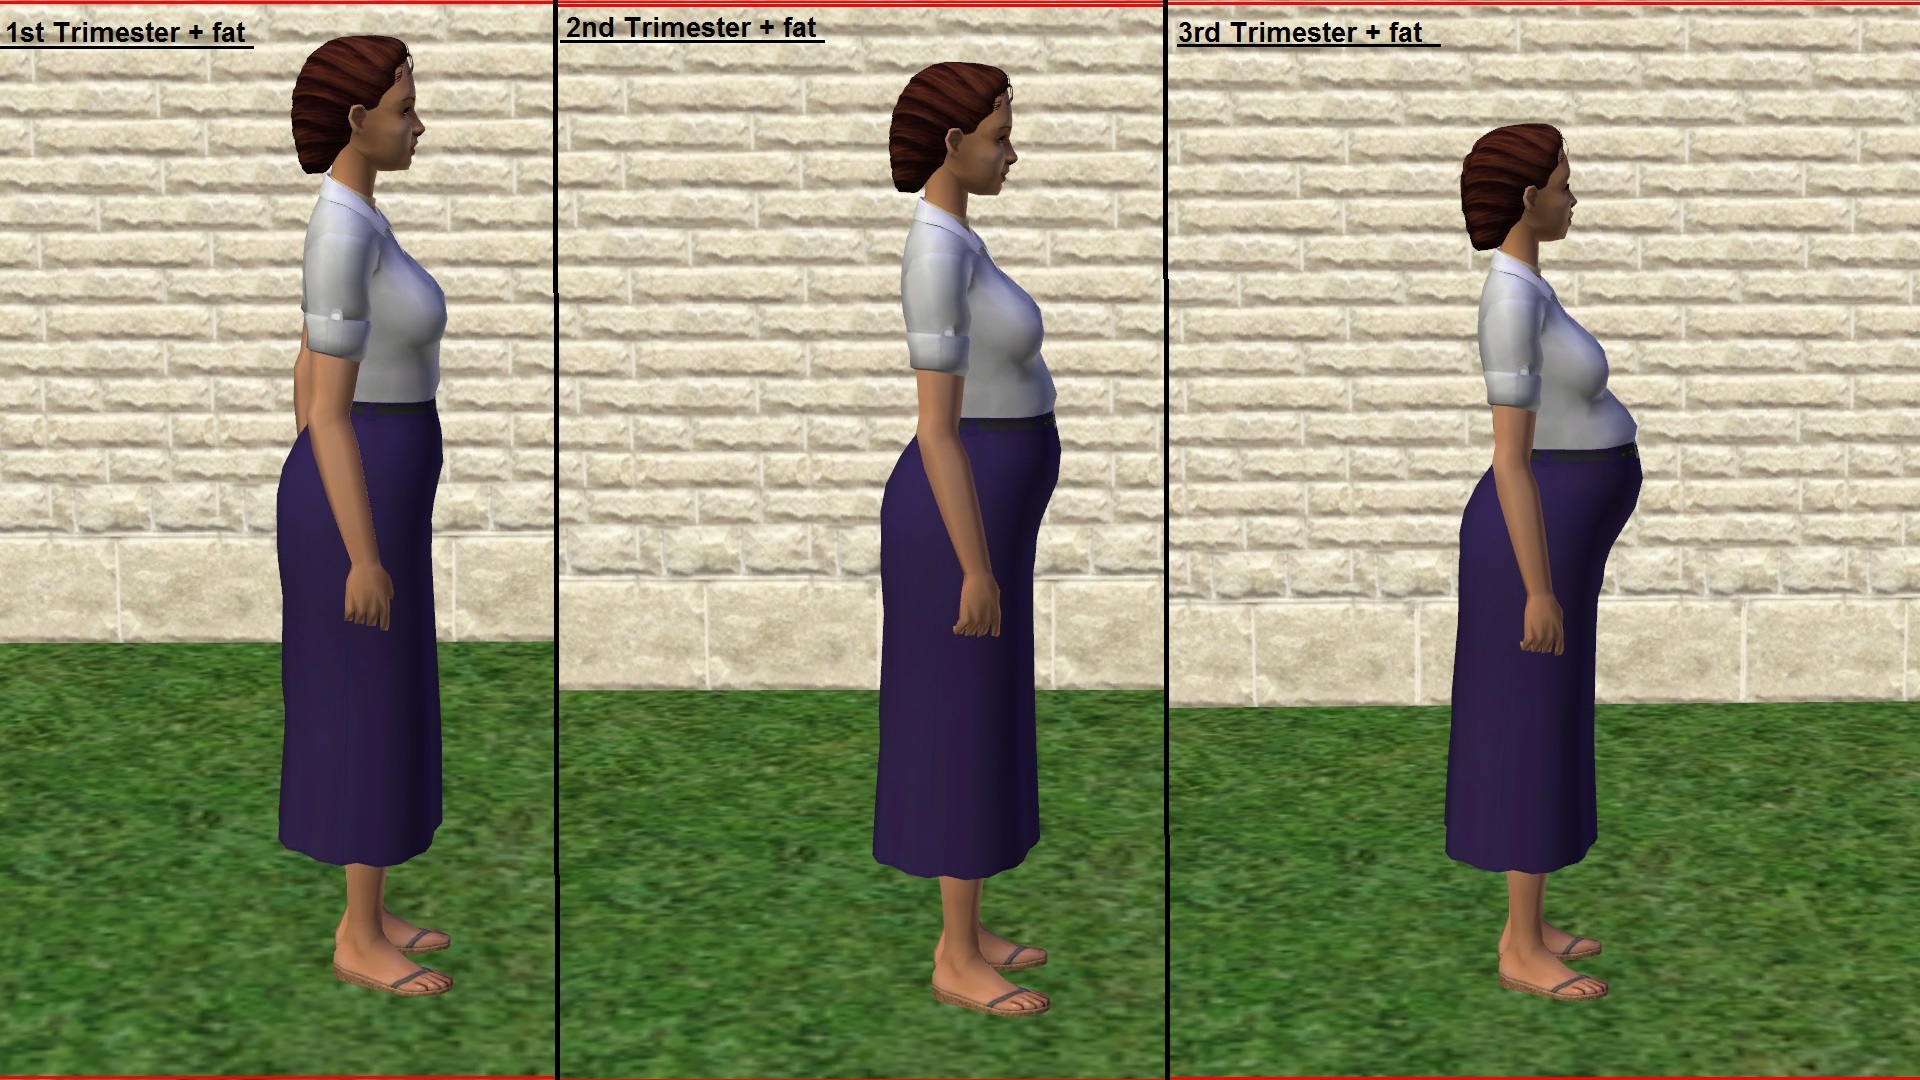 mod the sims 3to2 conversion wa french farmer outfit. Black Bedroom Furniture Sets. Home Design Ideas